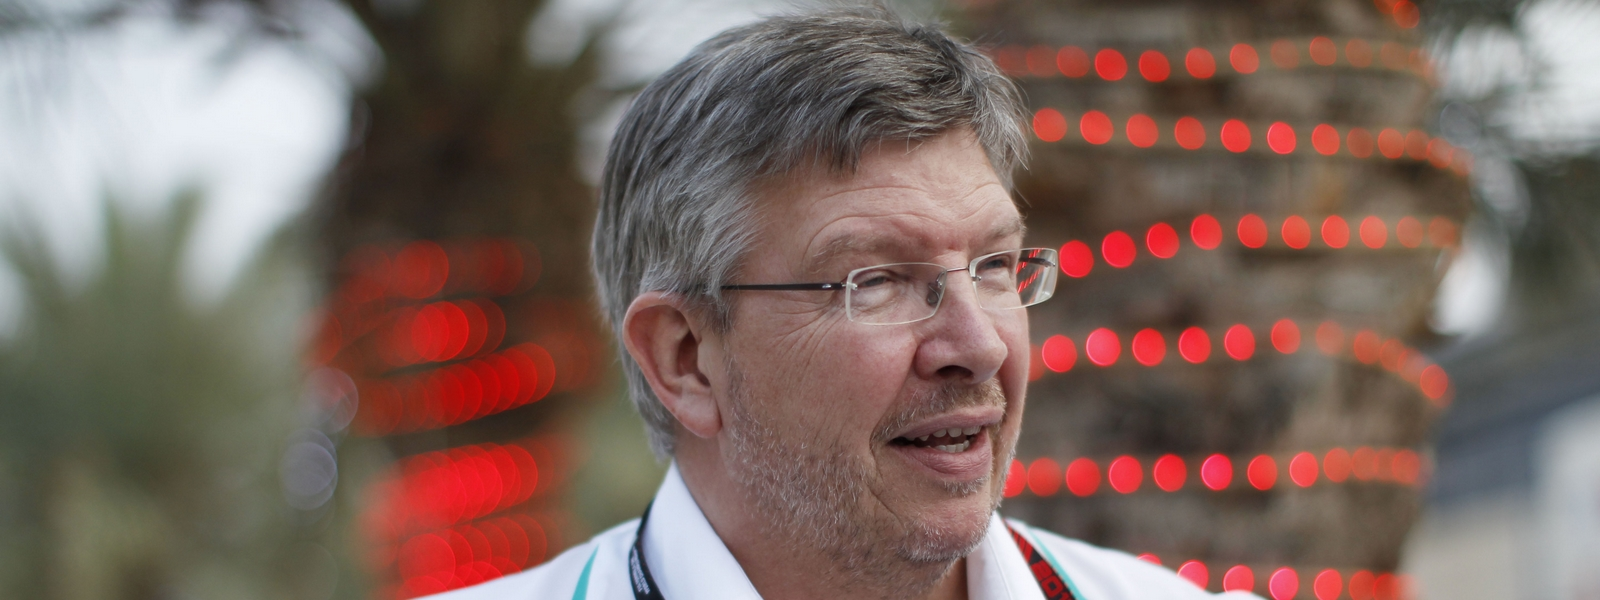 Motorsports: FIA Formula One World Championship 2013, Grand Prix of Bahrain,  Ross Brawn (GBR, Mercedes AMG Petronas F1 Team) *** Local Caption *** +++ www.hoch-zwei.net +++ copyright: HOCH ZWEI +++